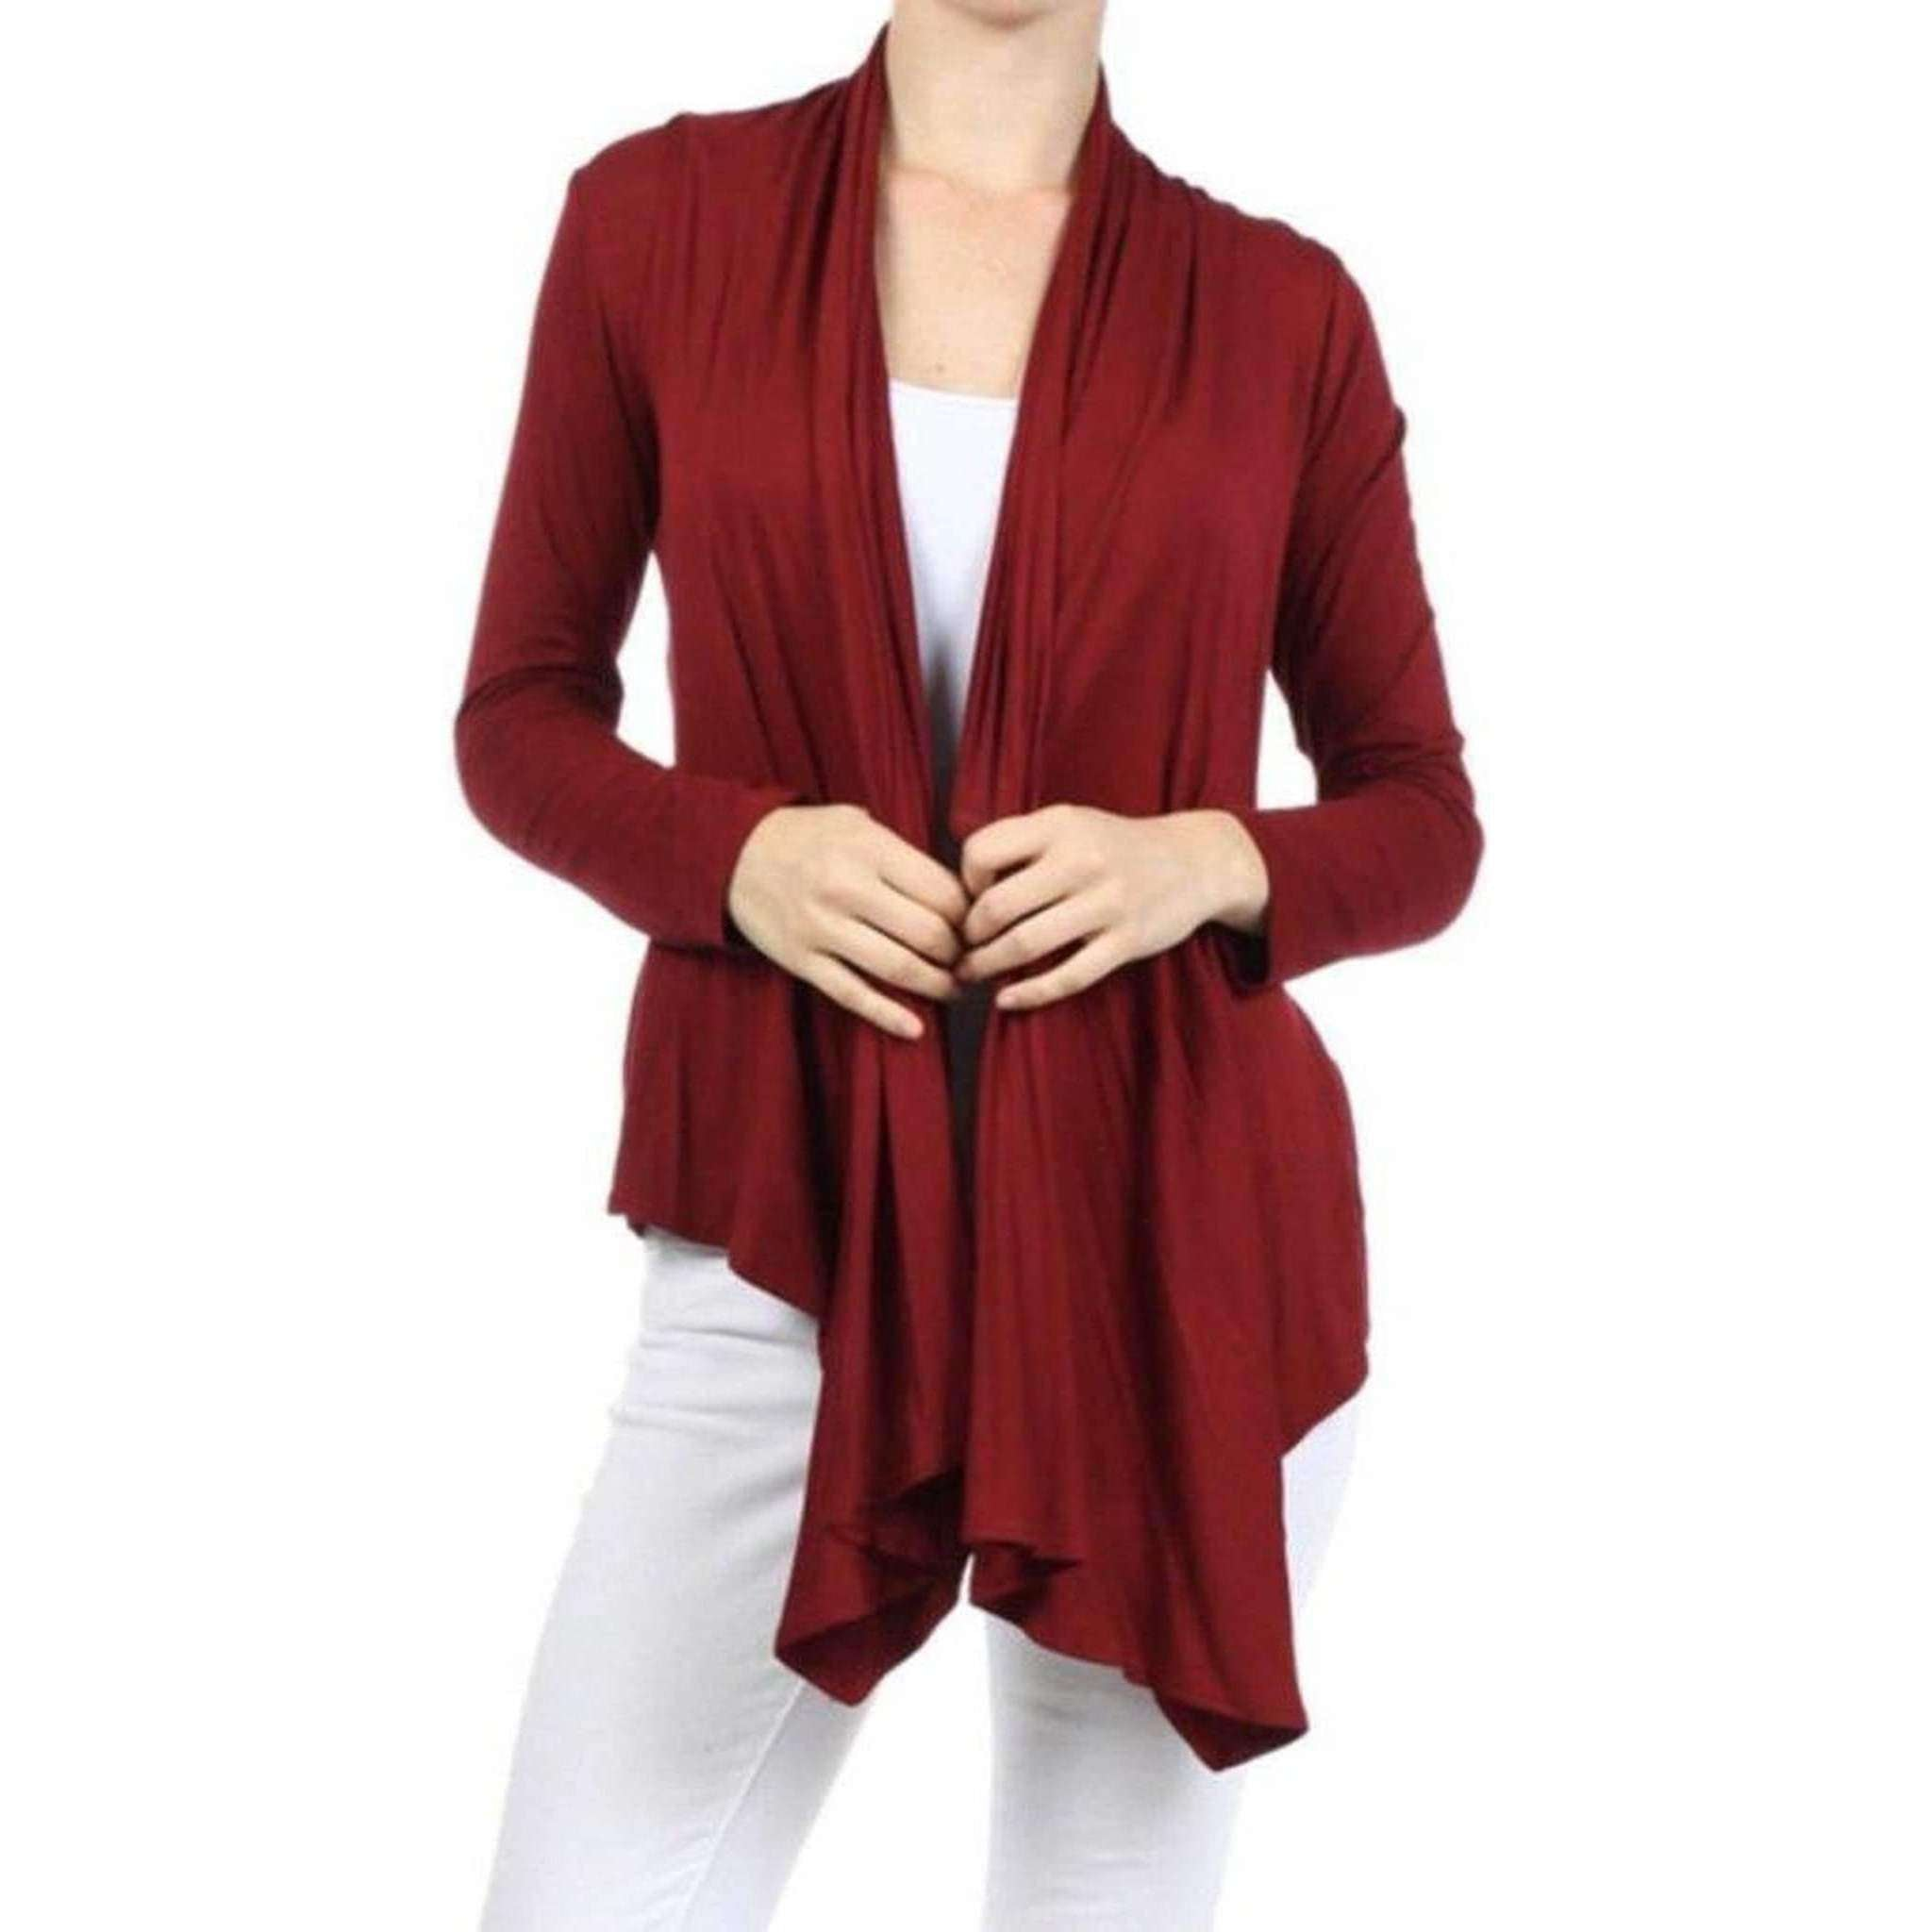 Womens Clothing Open Front Cardigan Red Maroon Angled Hem Front View